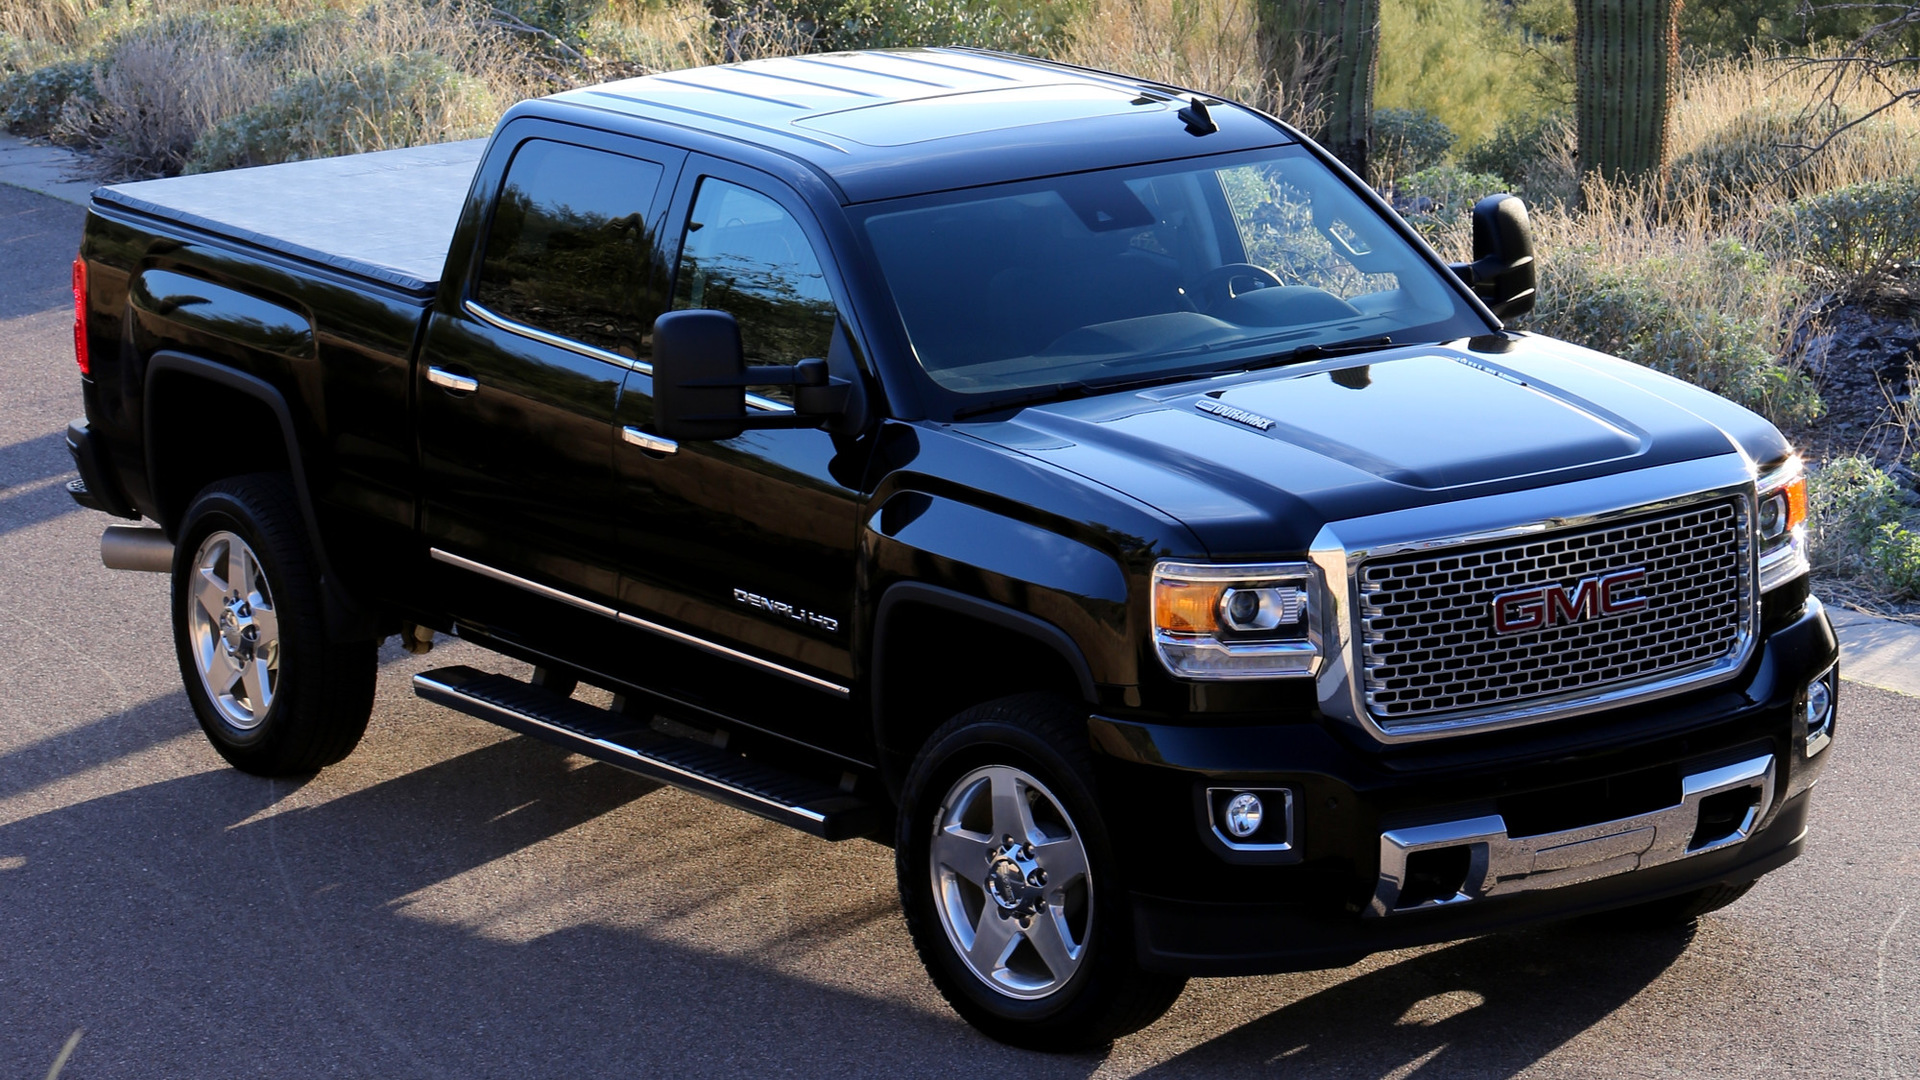 gmc cab denali wallpapers crew images hd and wide sierra wallpaper